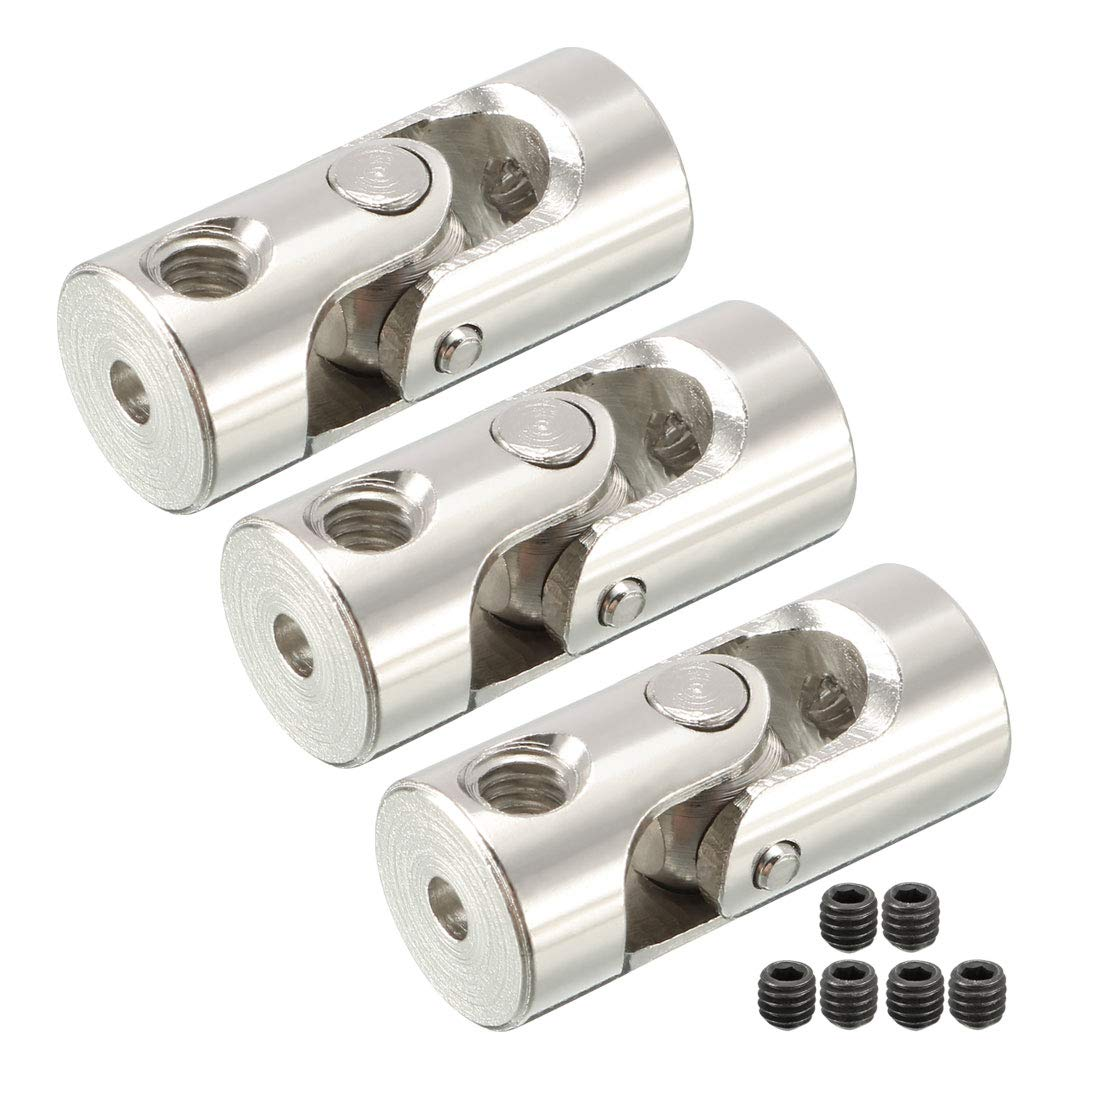 uxcell 2.0mm to 2.0mm Inner Dia Rotatable Universal Steering Mine U Joint Coupler 2pcs a17021800ux0207